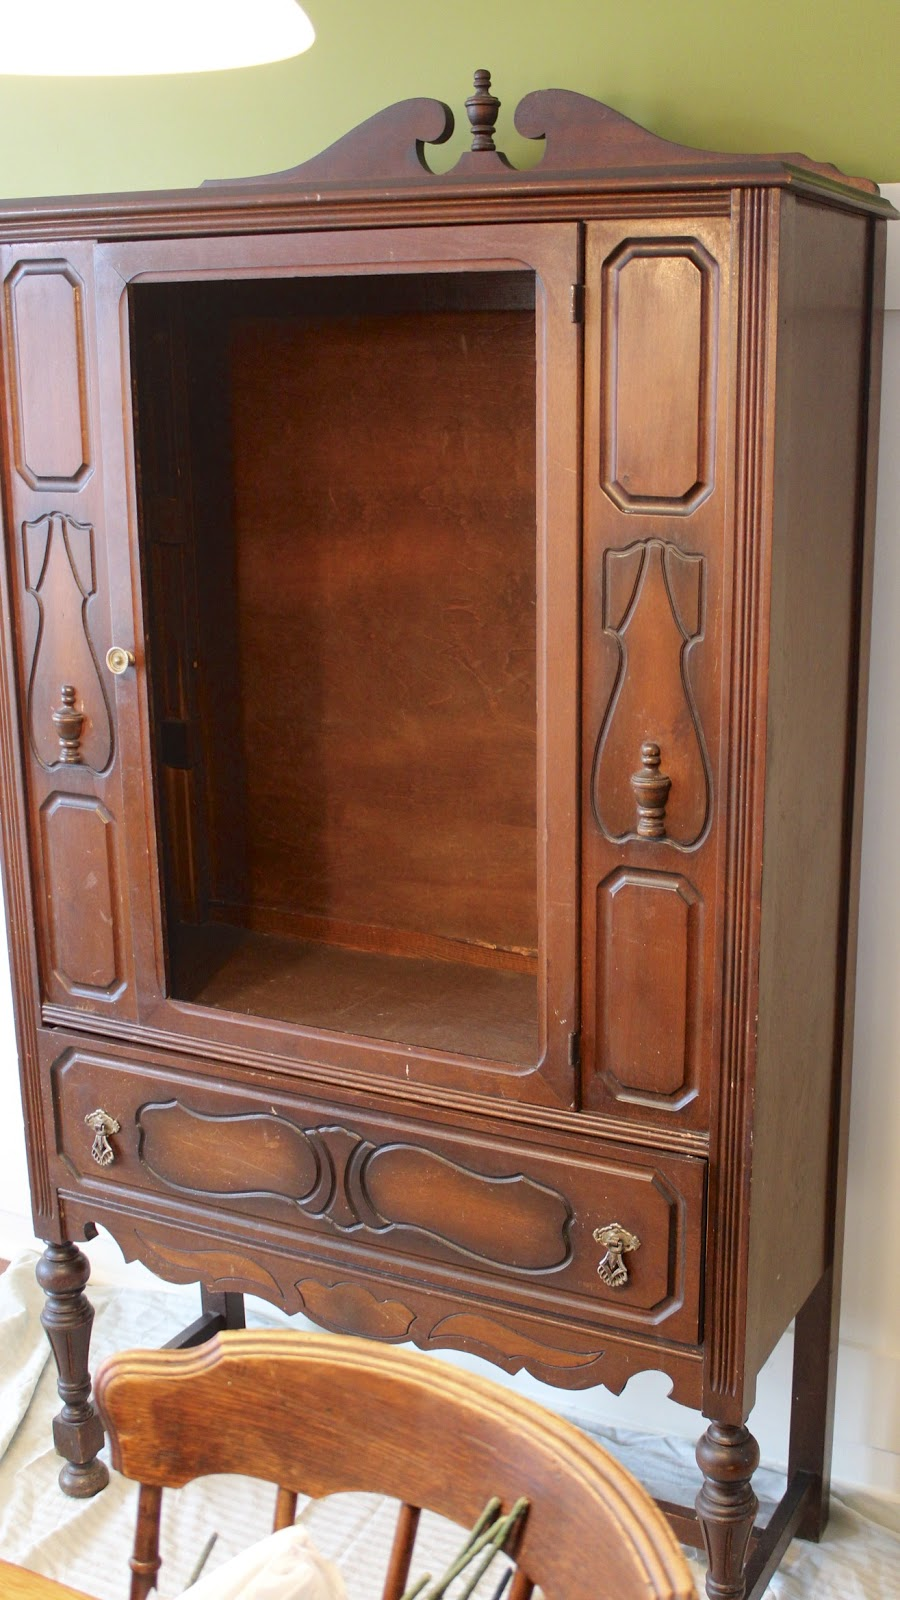 Painted Furniture Ascp Old White China Cabinet New